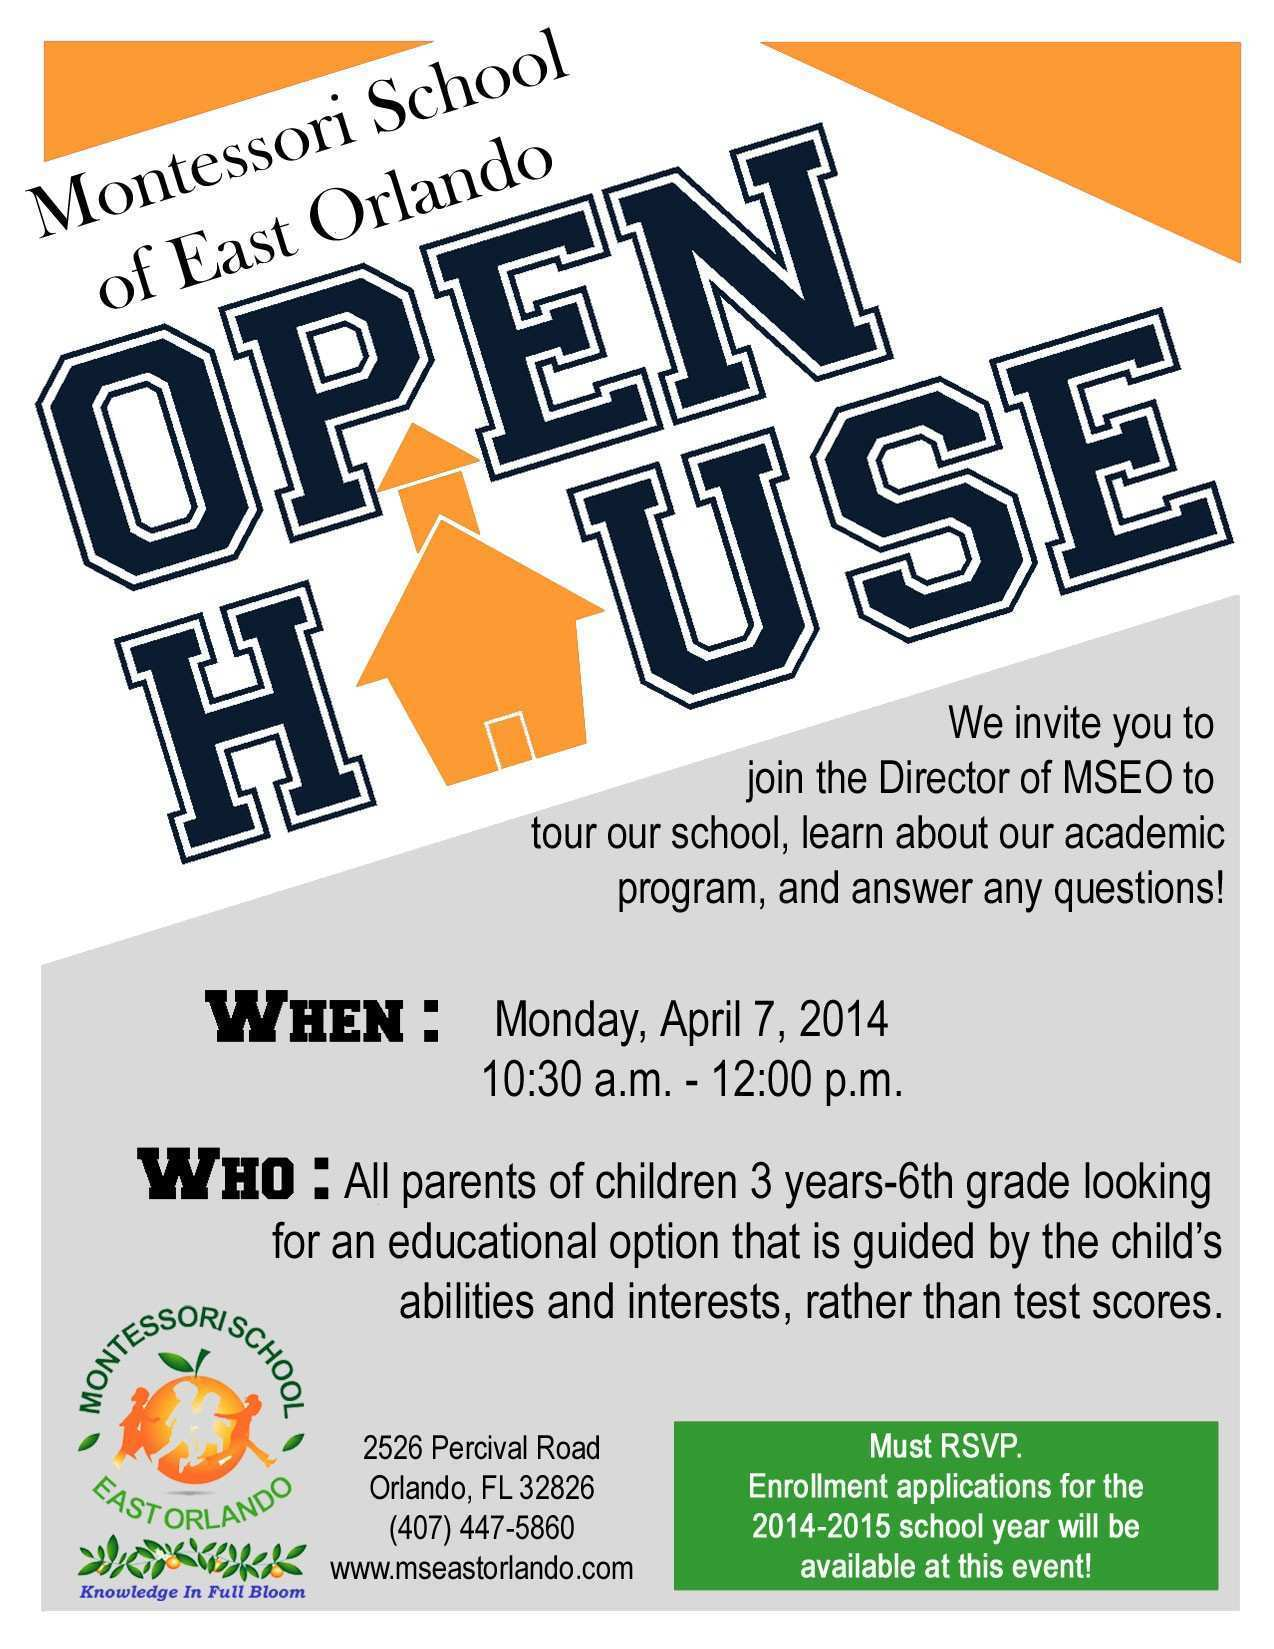 open house flyer free, an example of open house flyer, open house flyers for realtors, open house school flyer template, Scentsy open house flyer, fire department open house flyer, open house flyer for elementary school